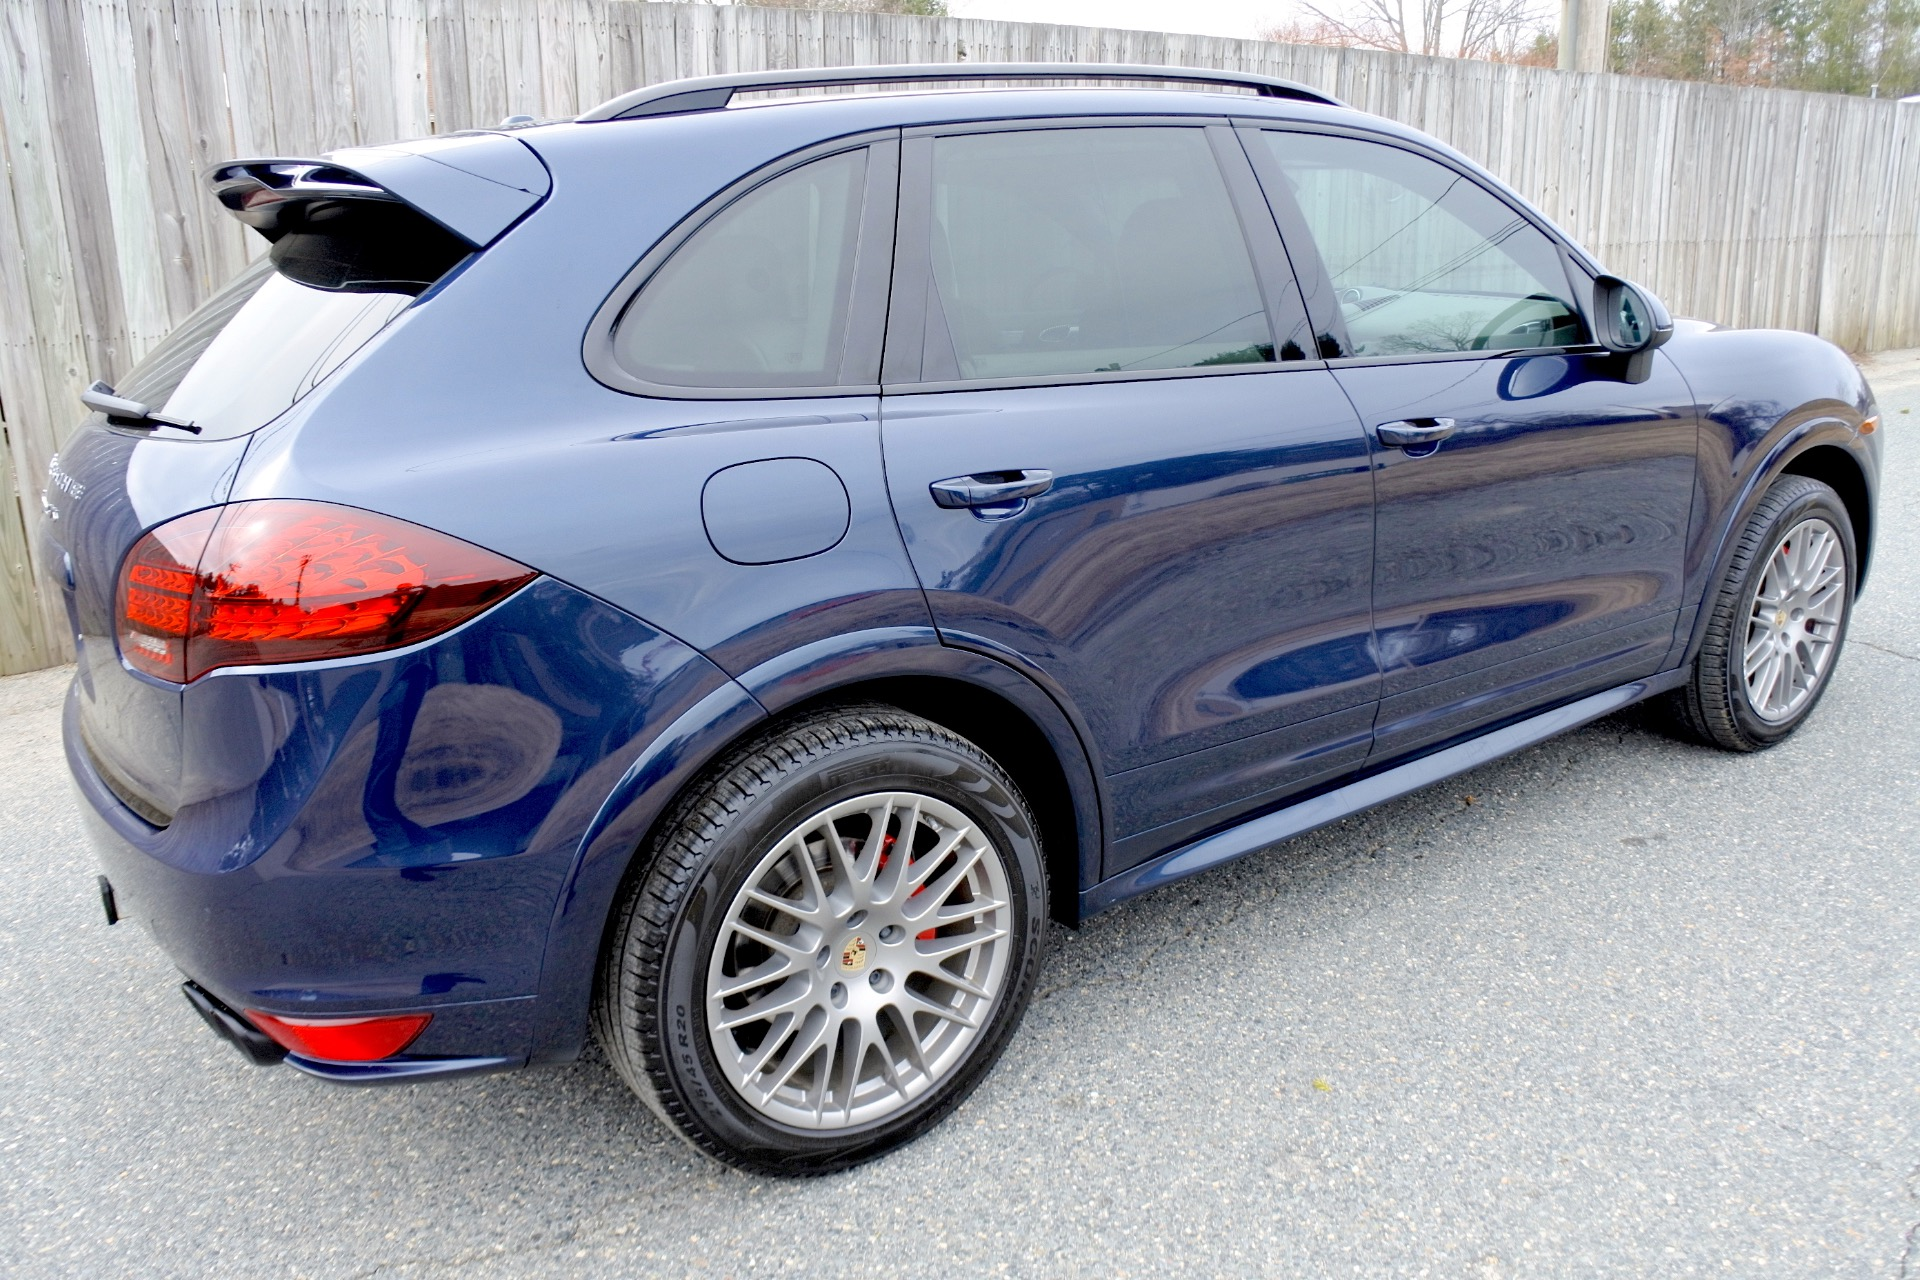 Used 2013 Porsche Cayenne GTS AWD Used 2013 Porsche Cayenne GTS AWD for sale  at Metro West Motorcars LLC in Shrewsbury MA 5